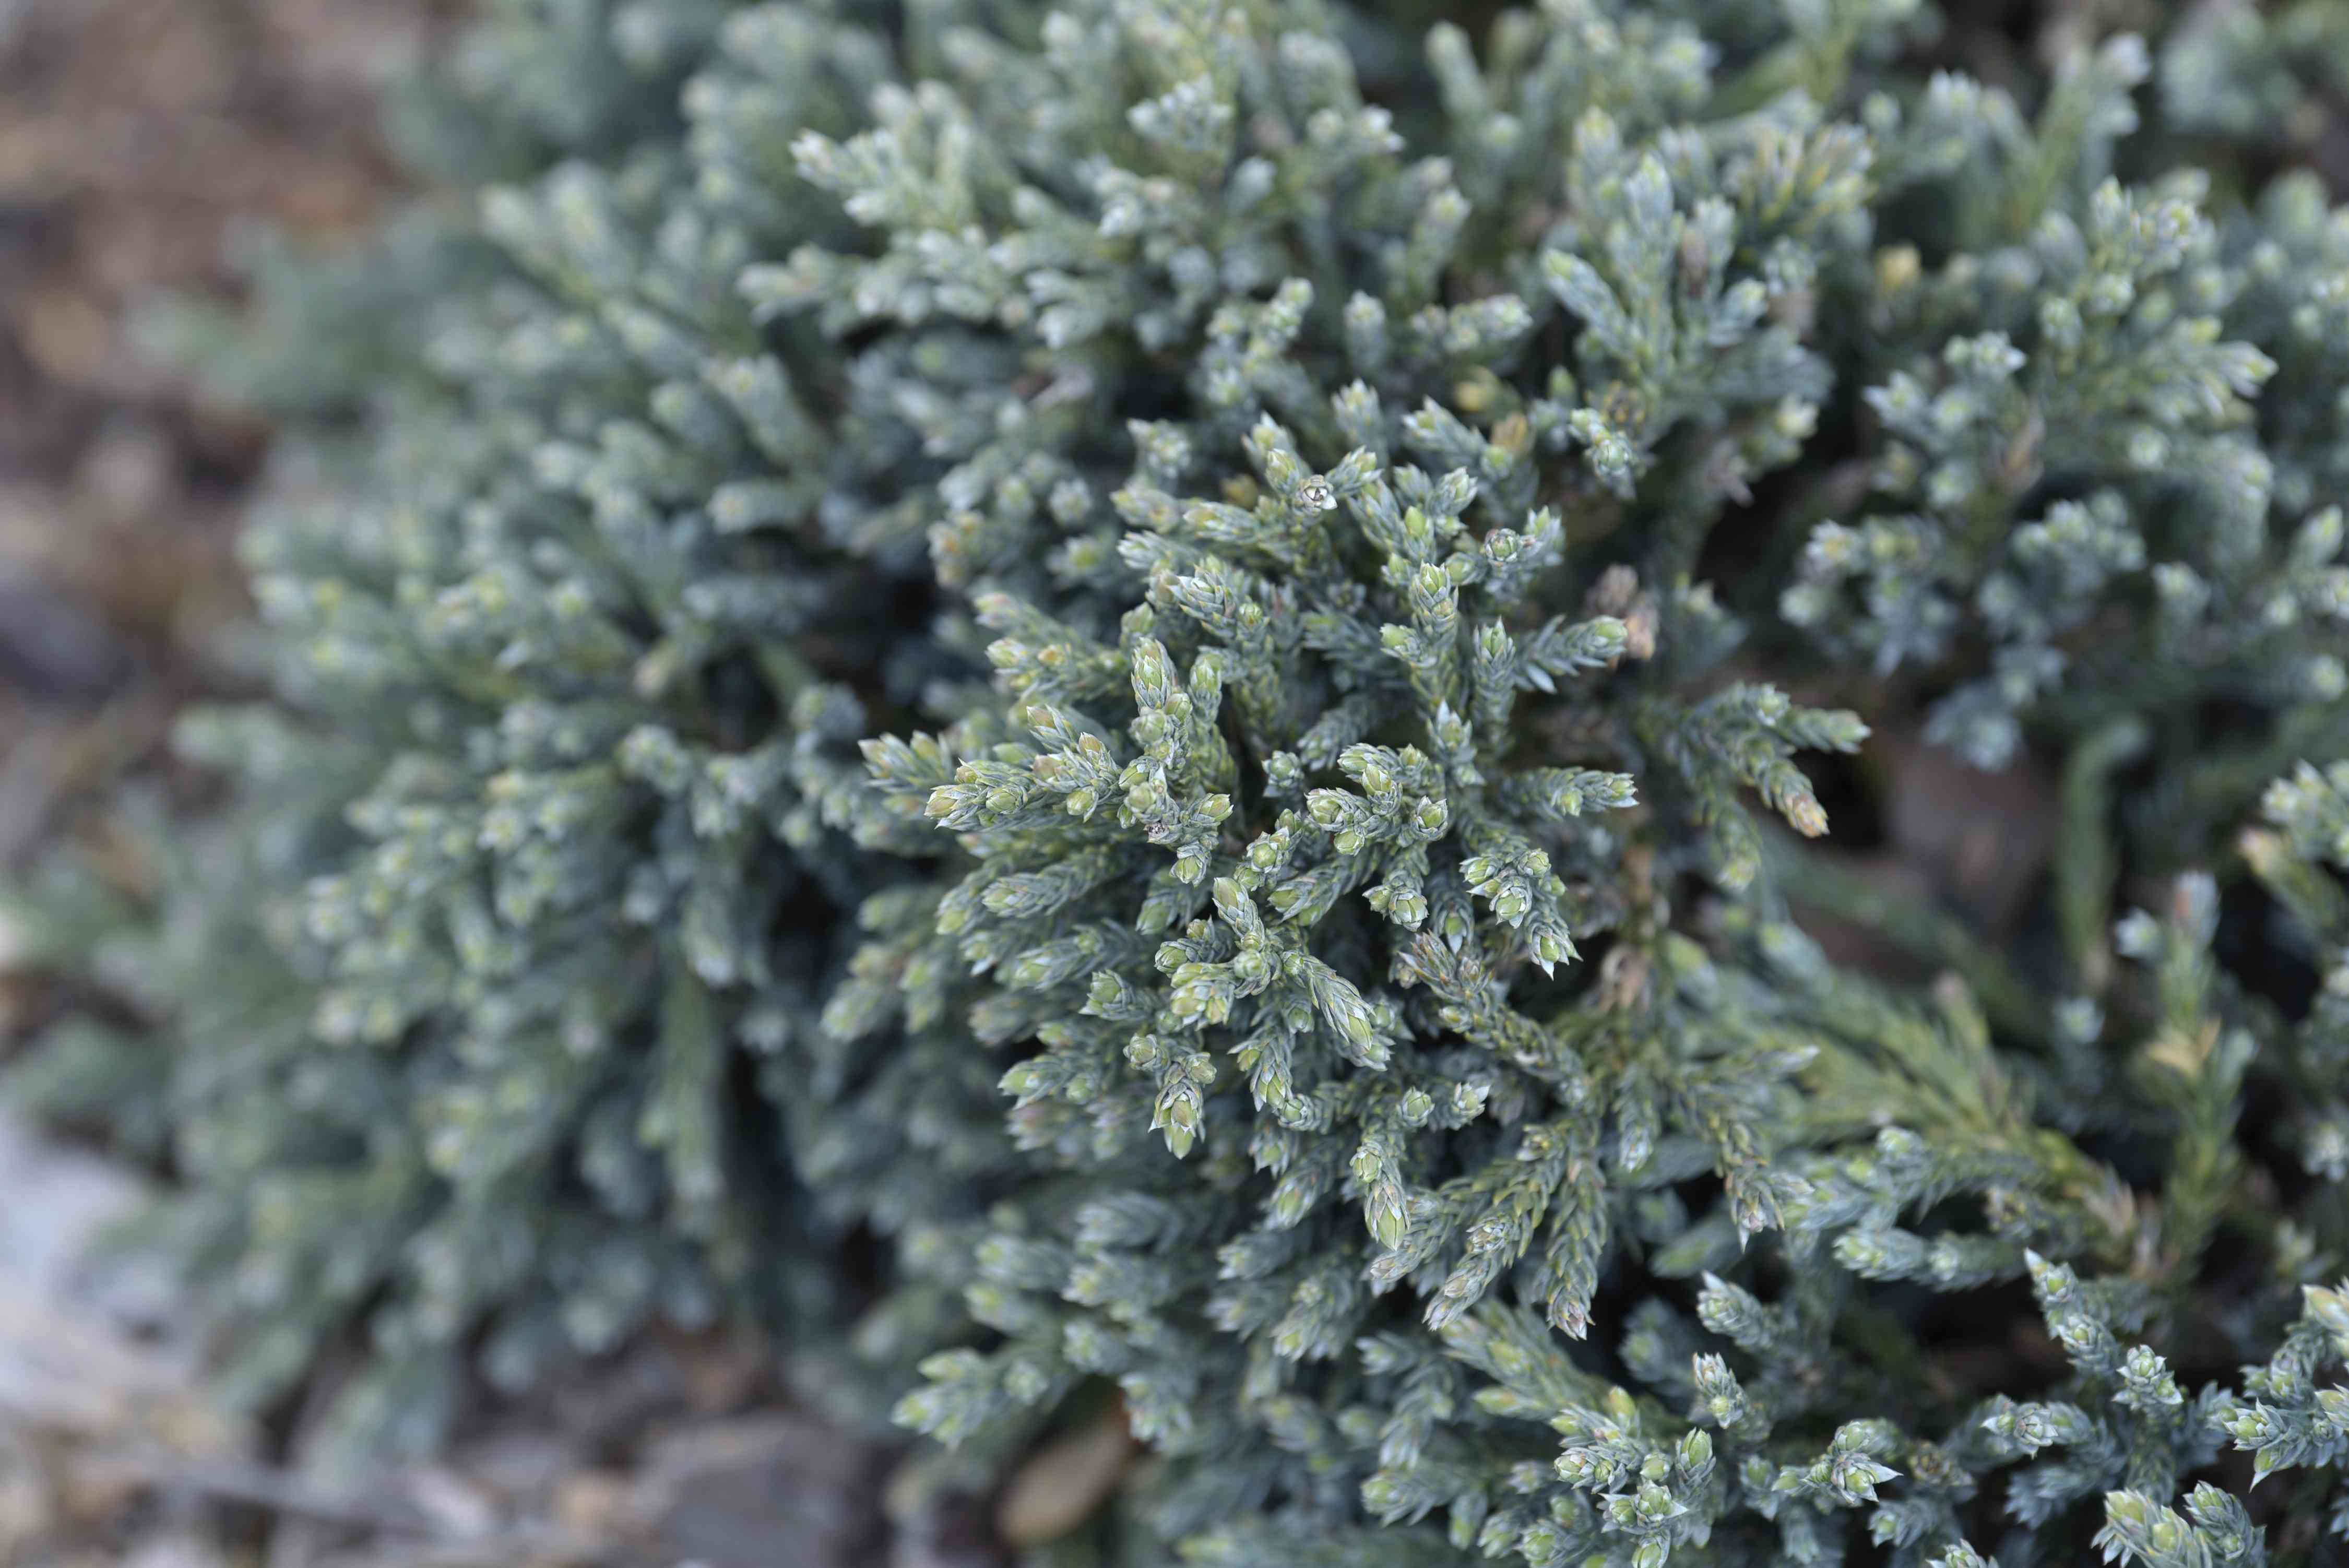 Blue star juniper evergreen shrub with silvery-blue, densely-packed needles closeup